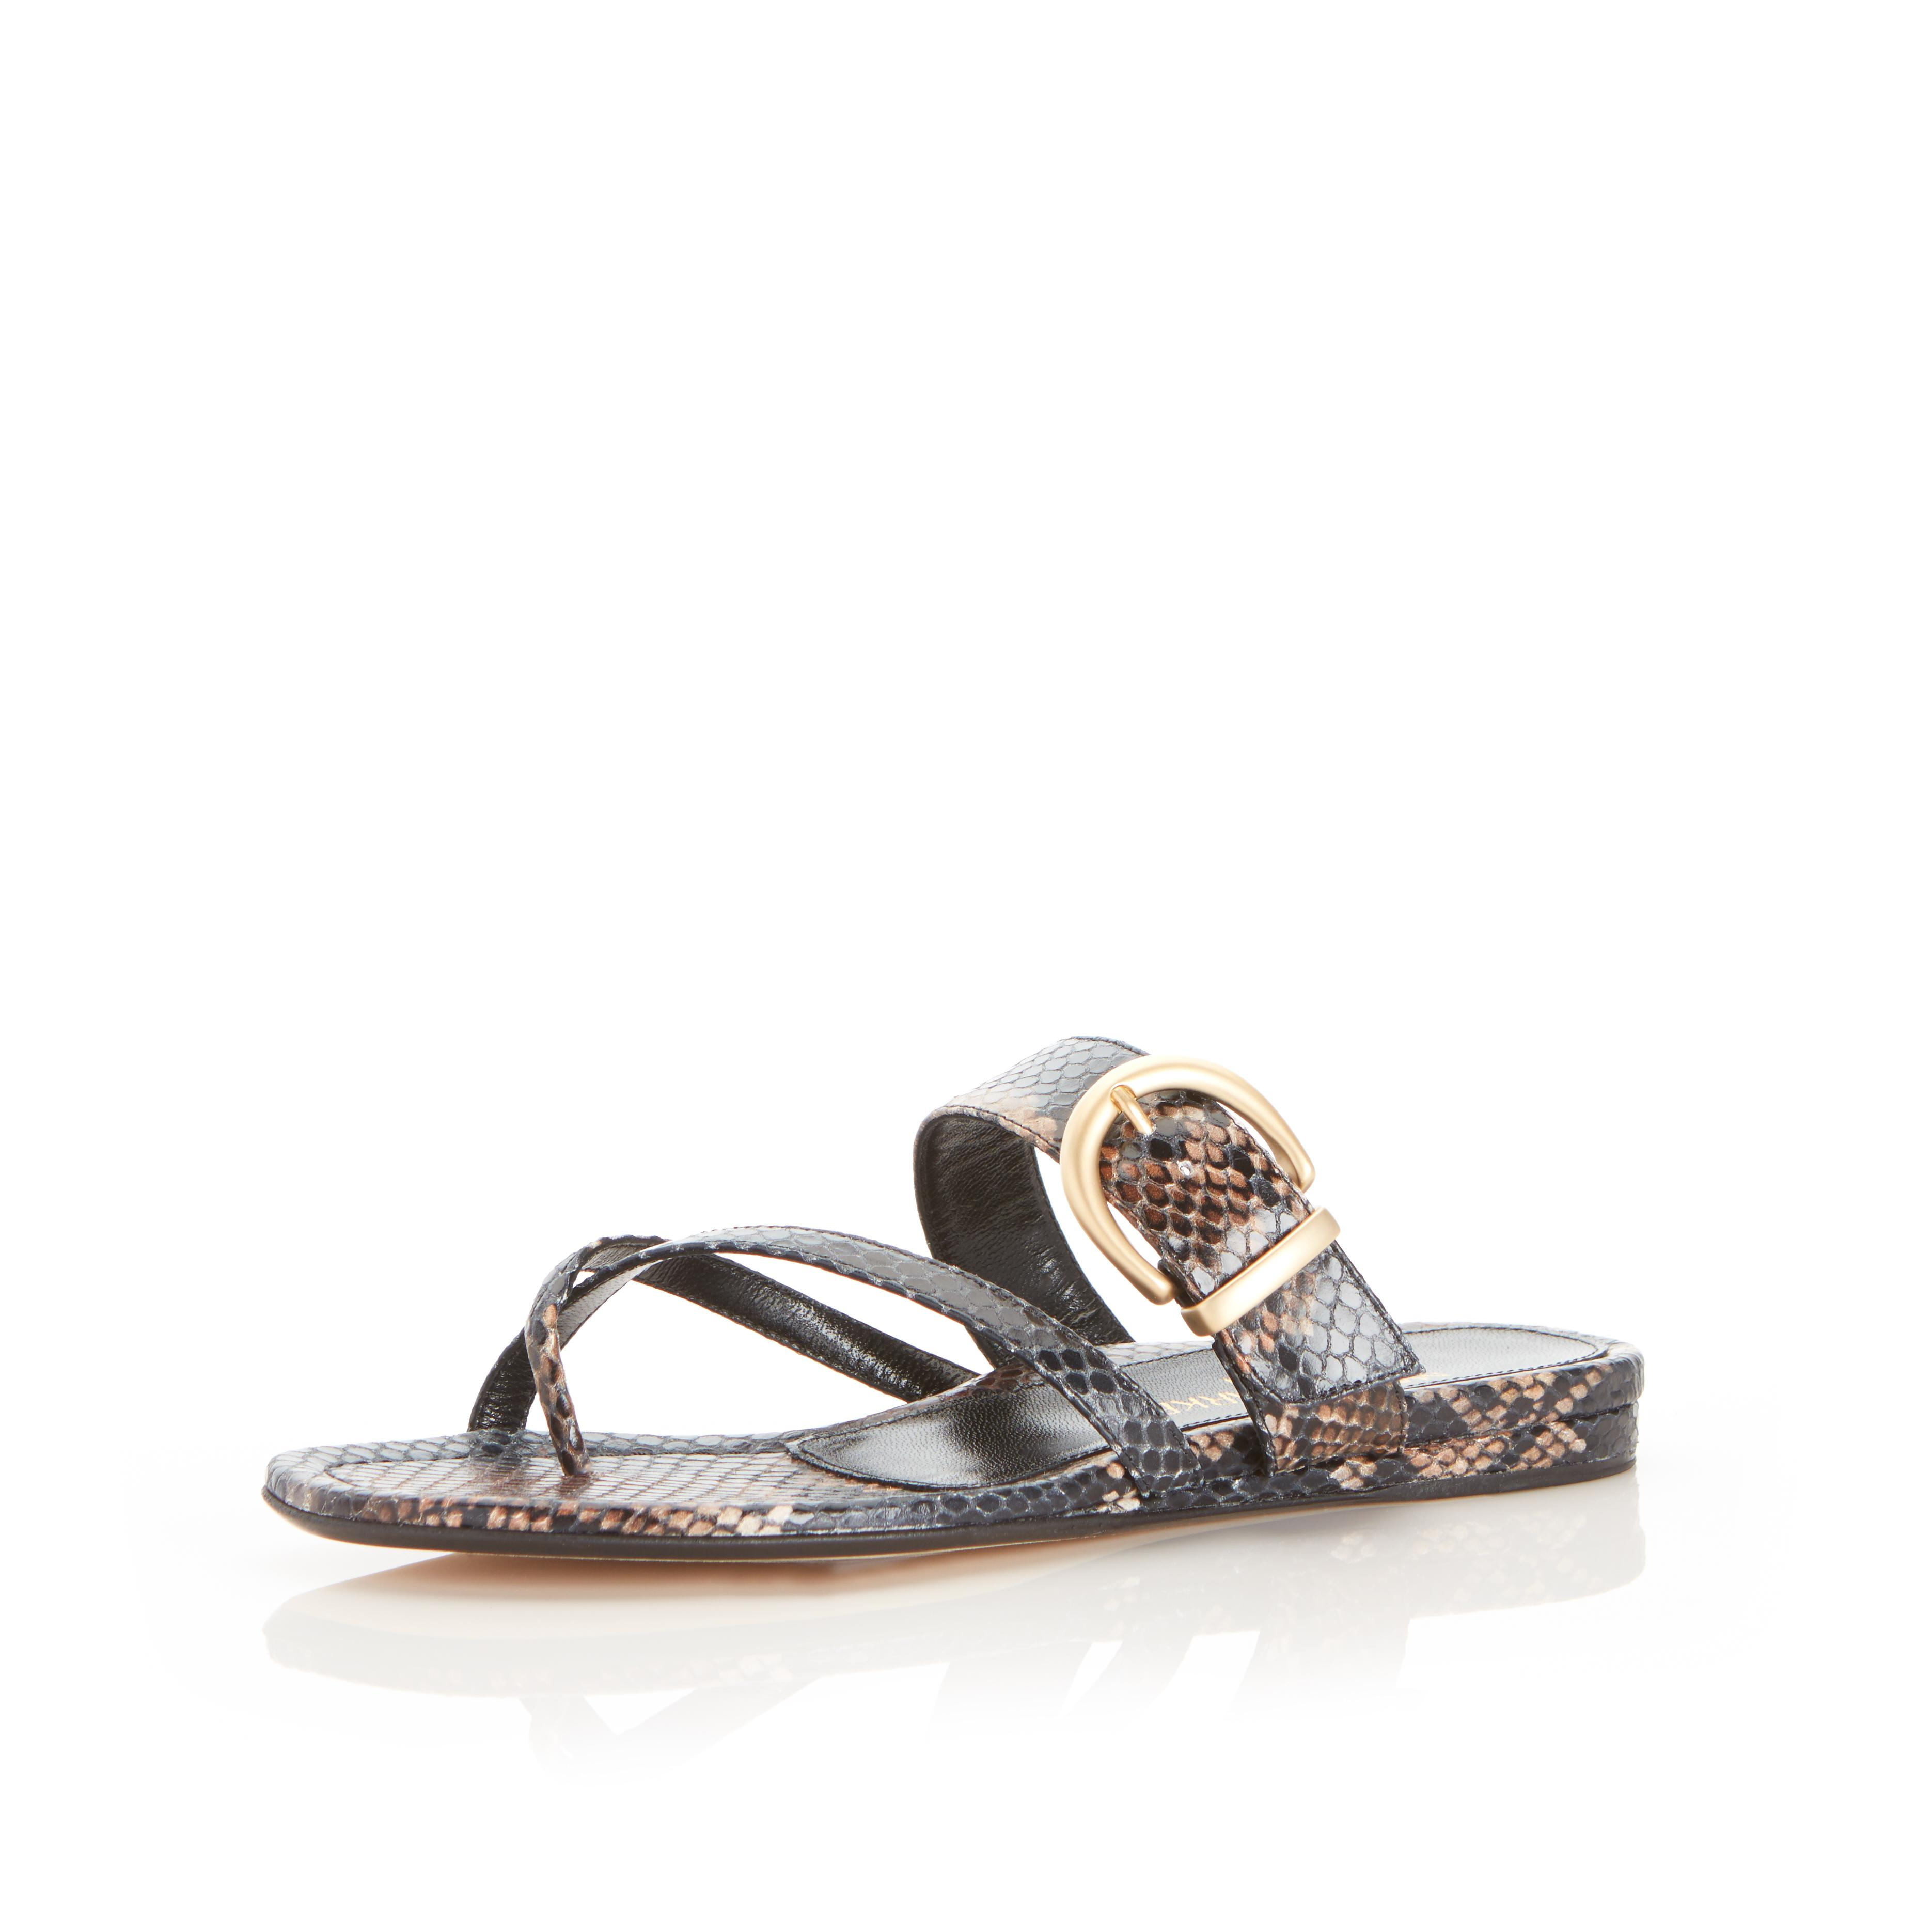 Hayley | Leather Thong Sandal With Metal Buckle Detail 1